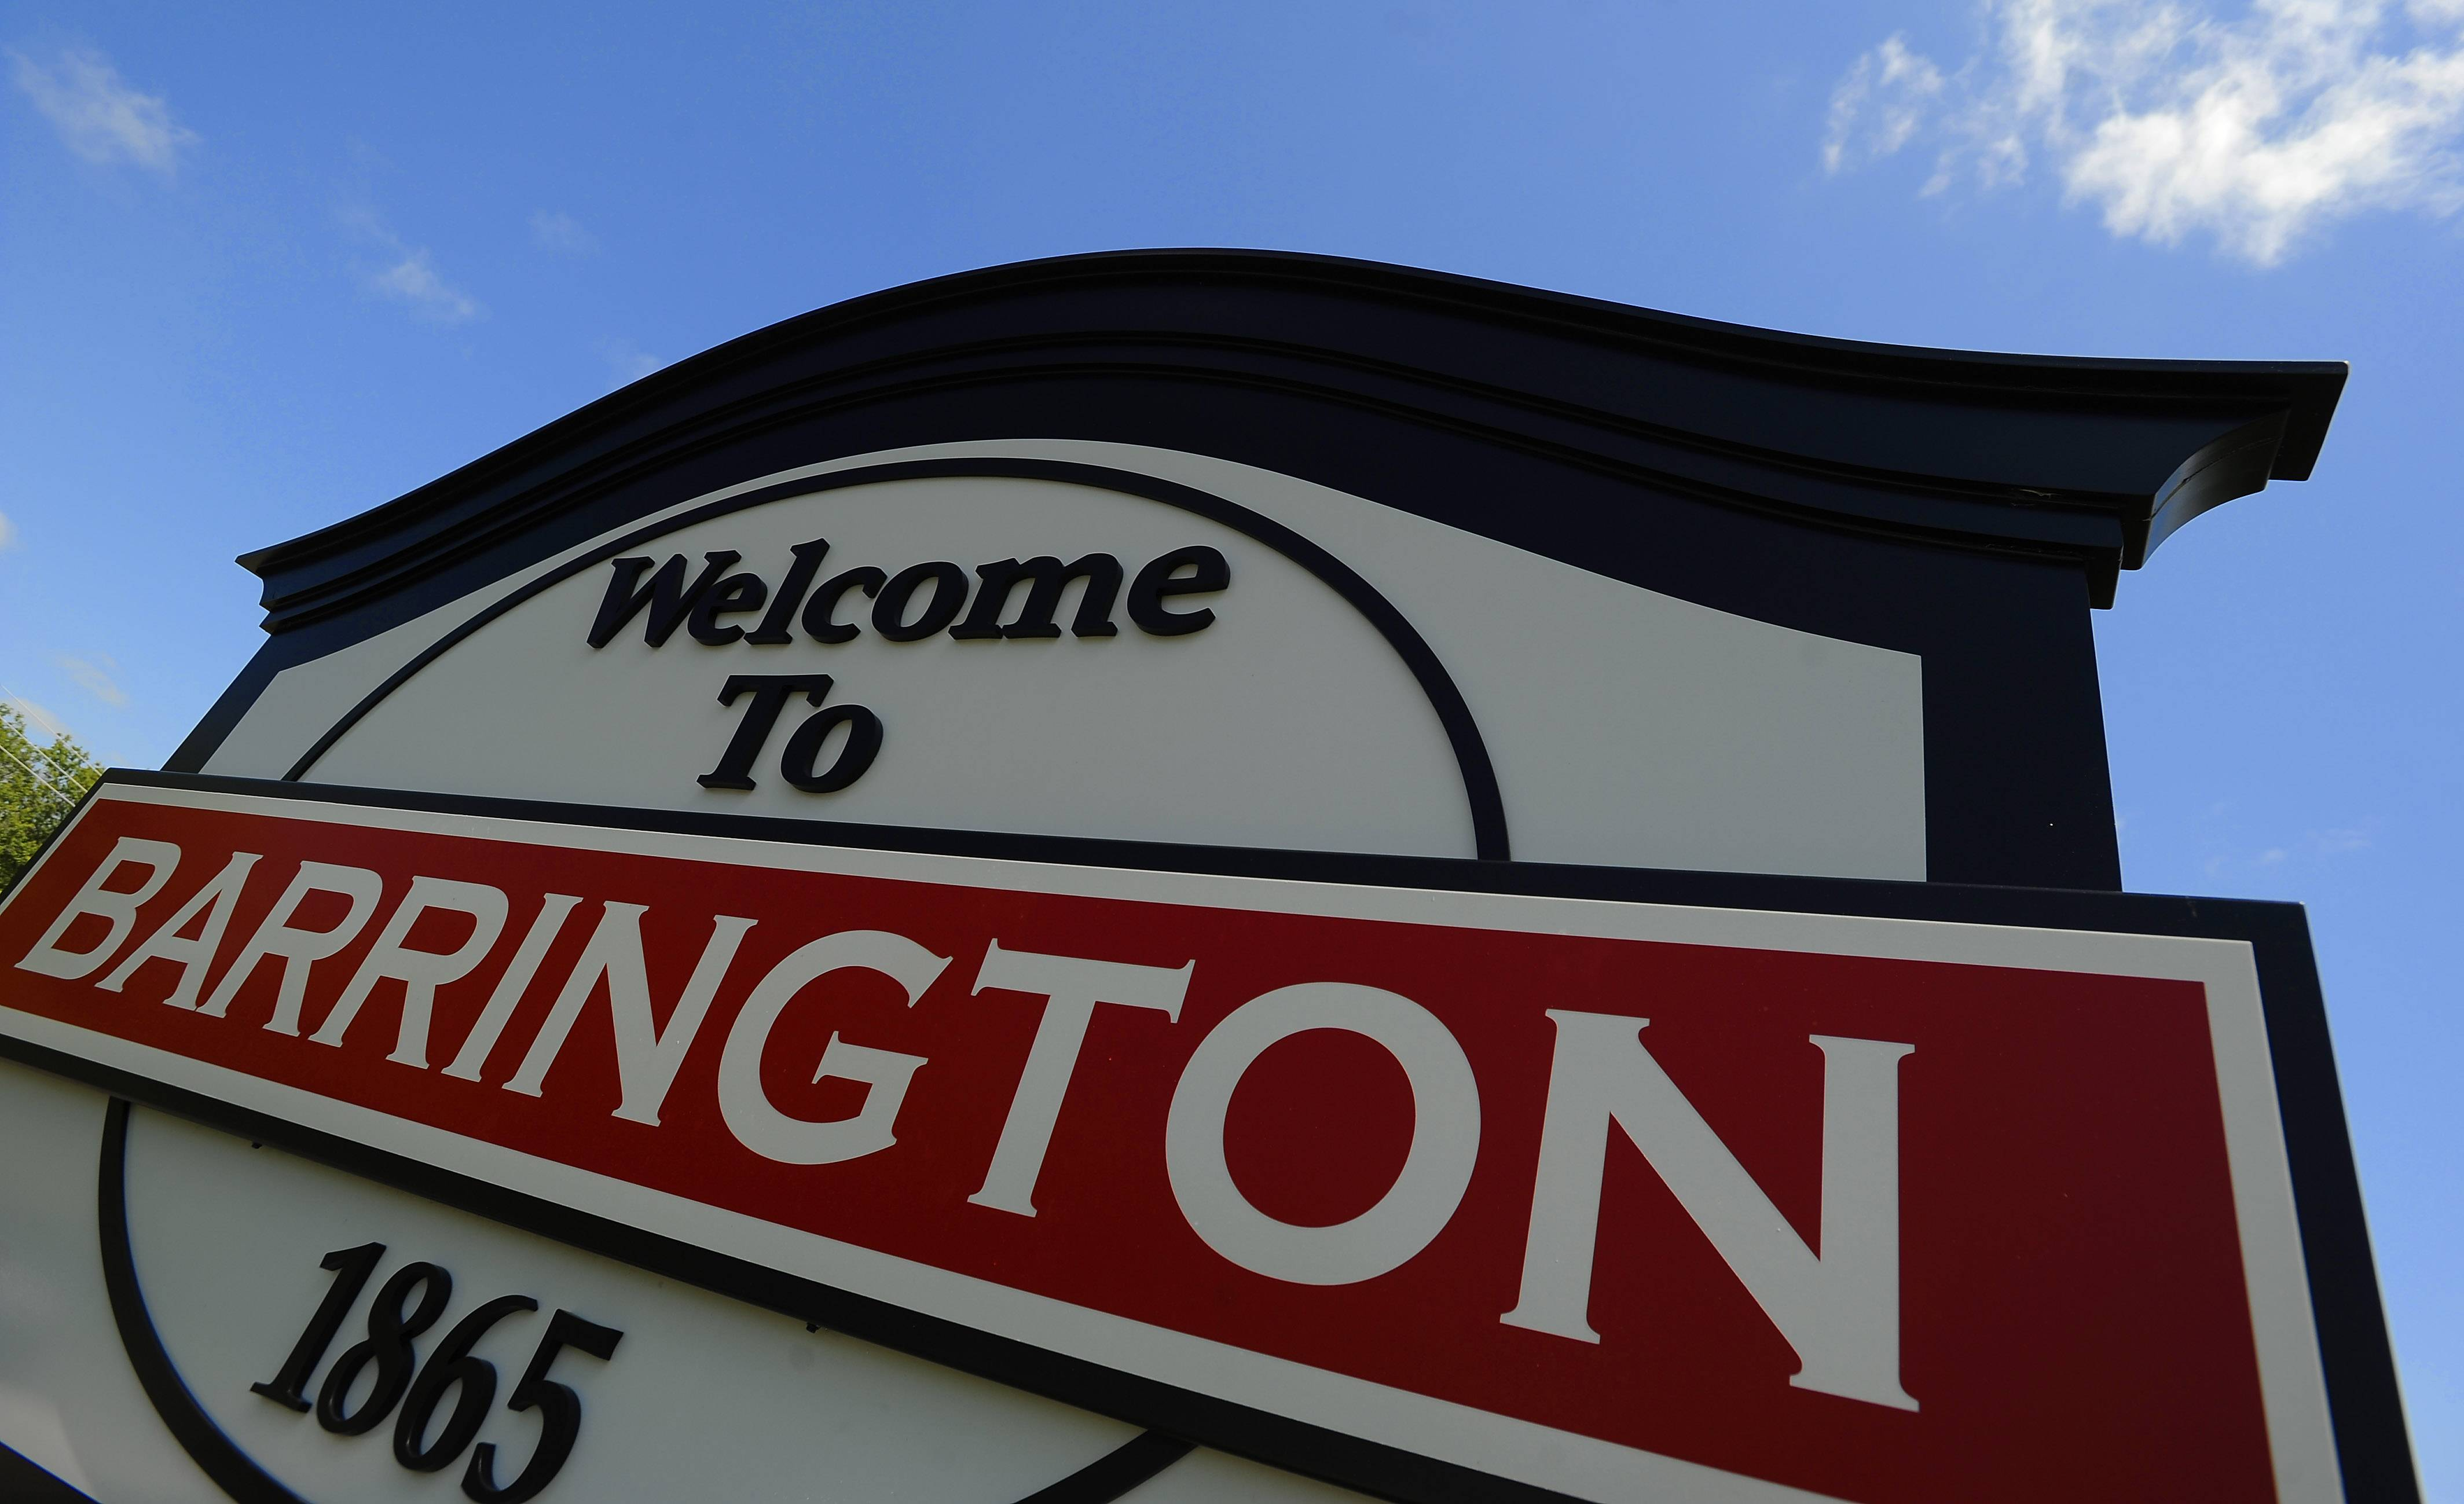 Barrington taxpayers are expected to save nearly $575,000 through refinancing of an $8.3 million debt.